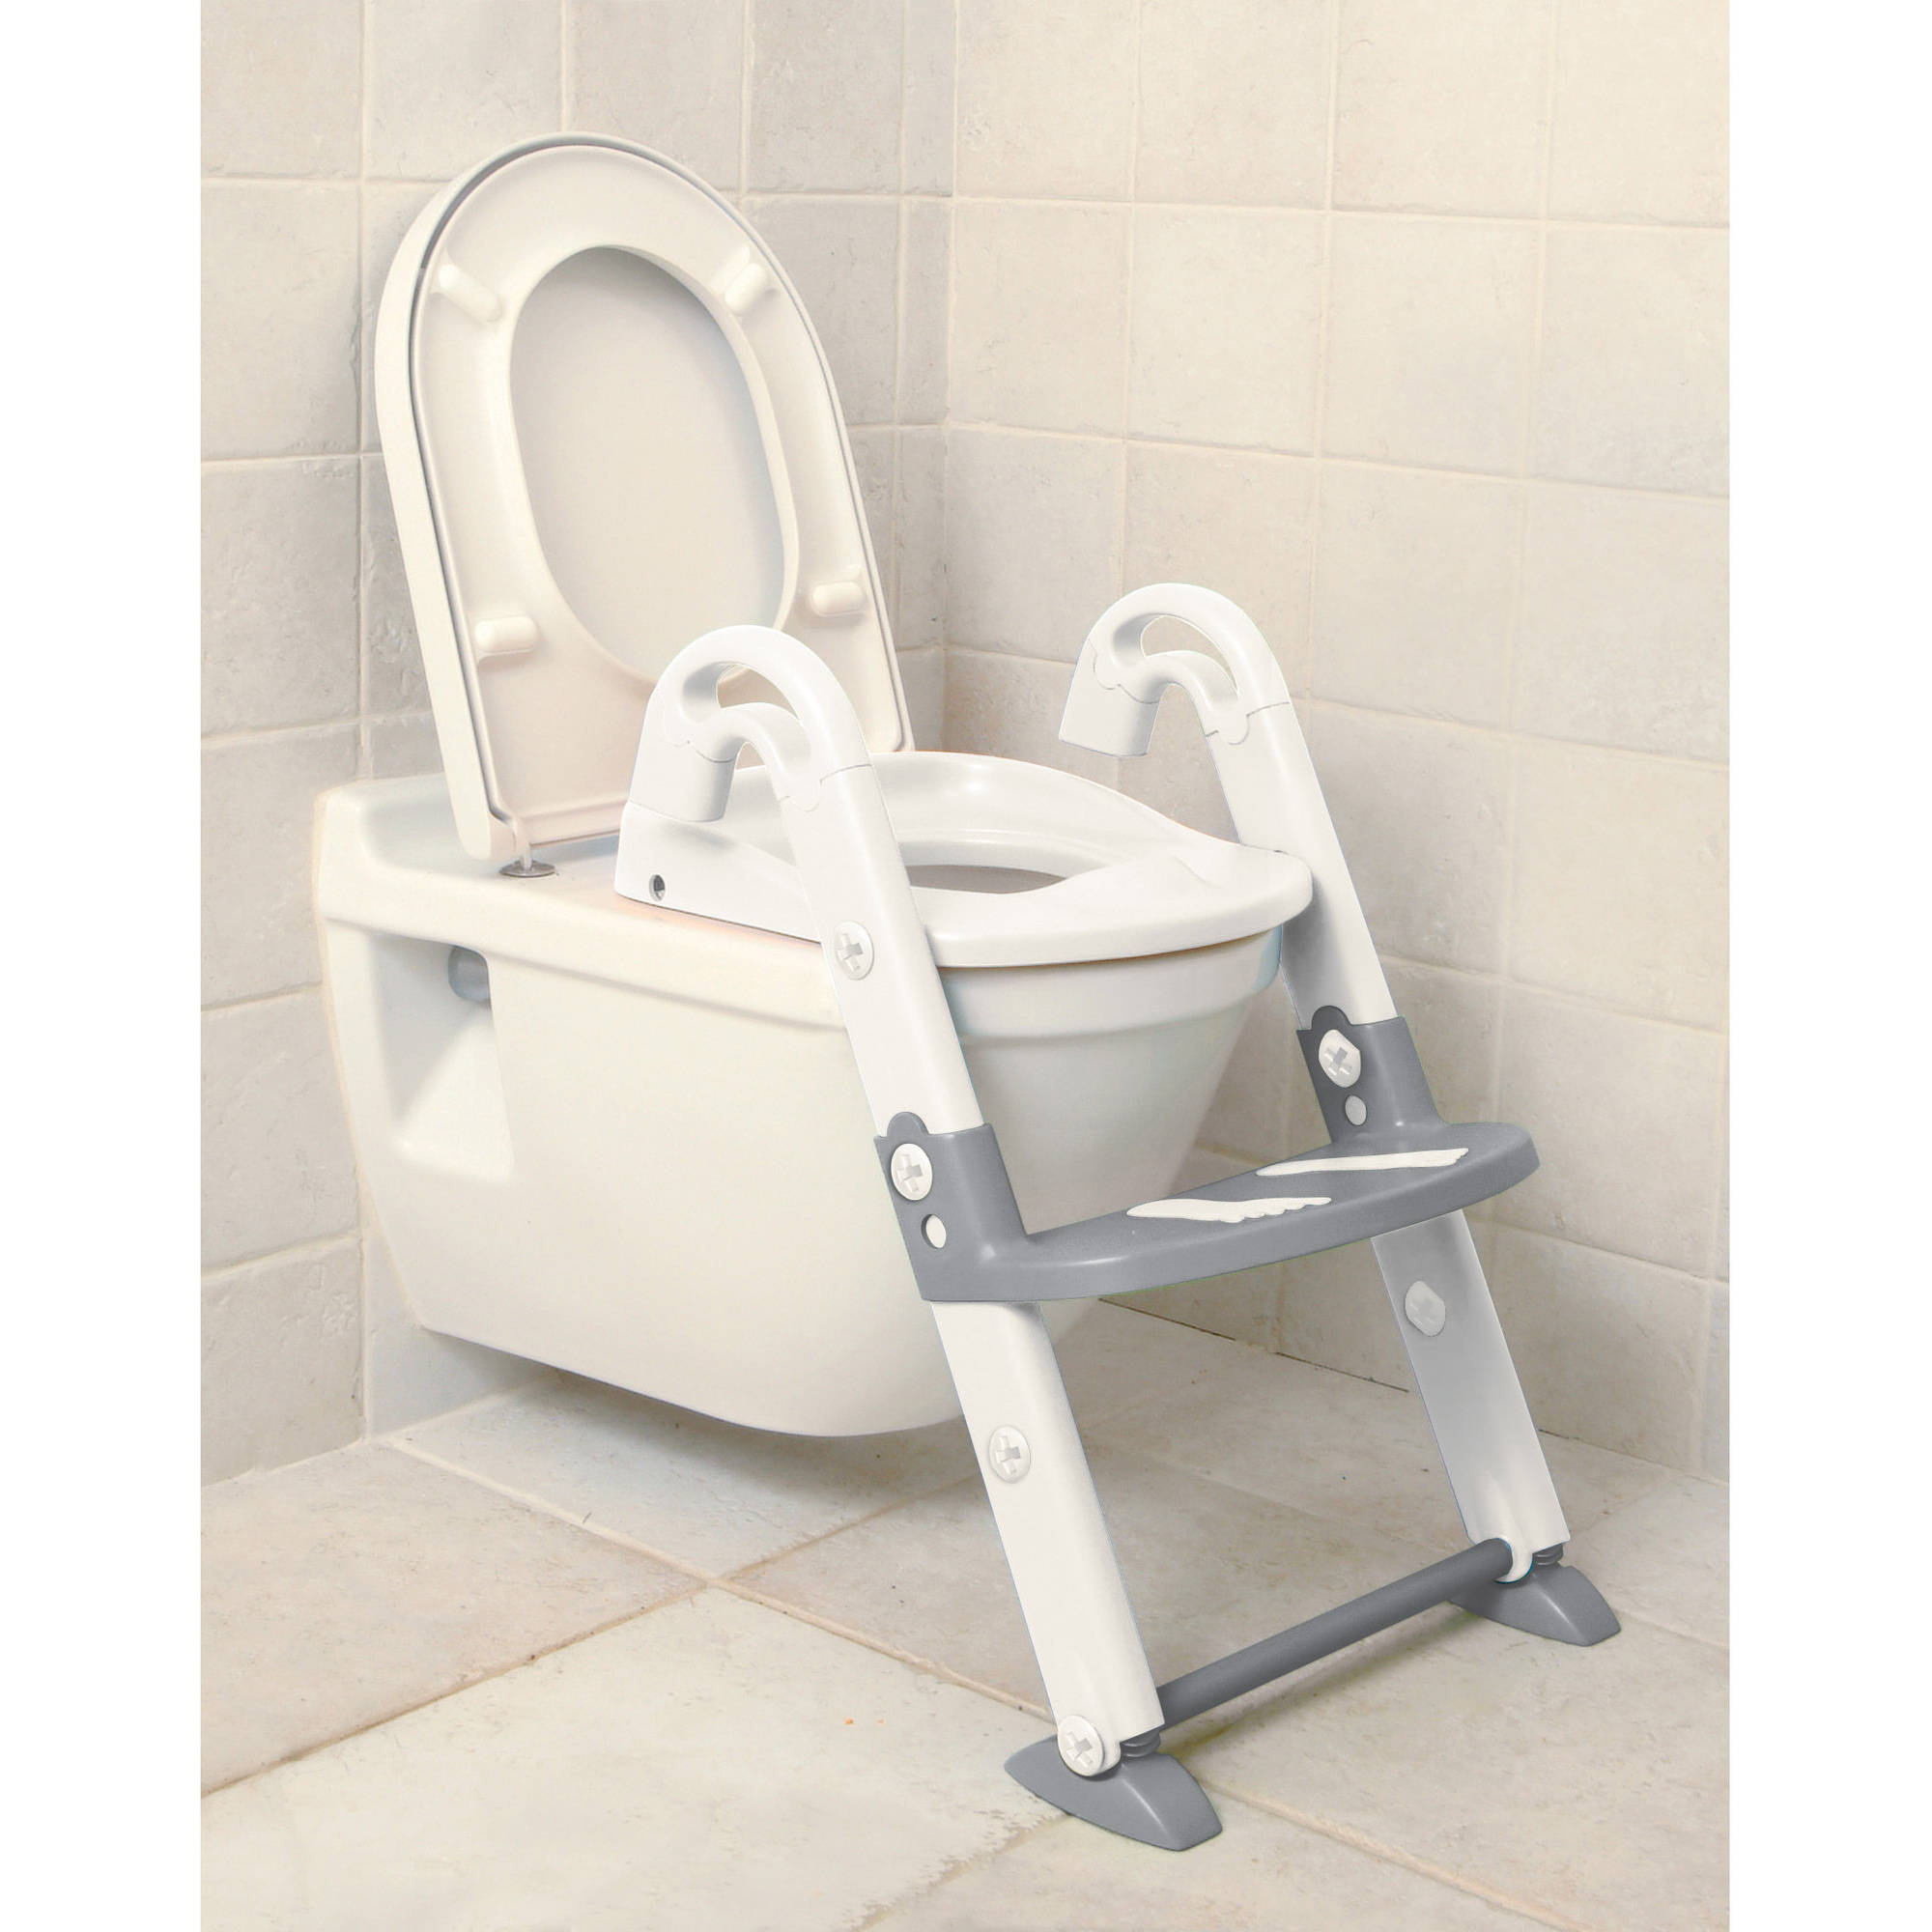 Dreambaby 3-in-1 Toilet Trainer by Dreambaby